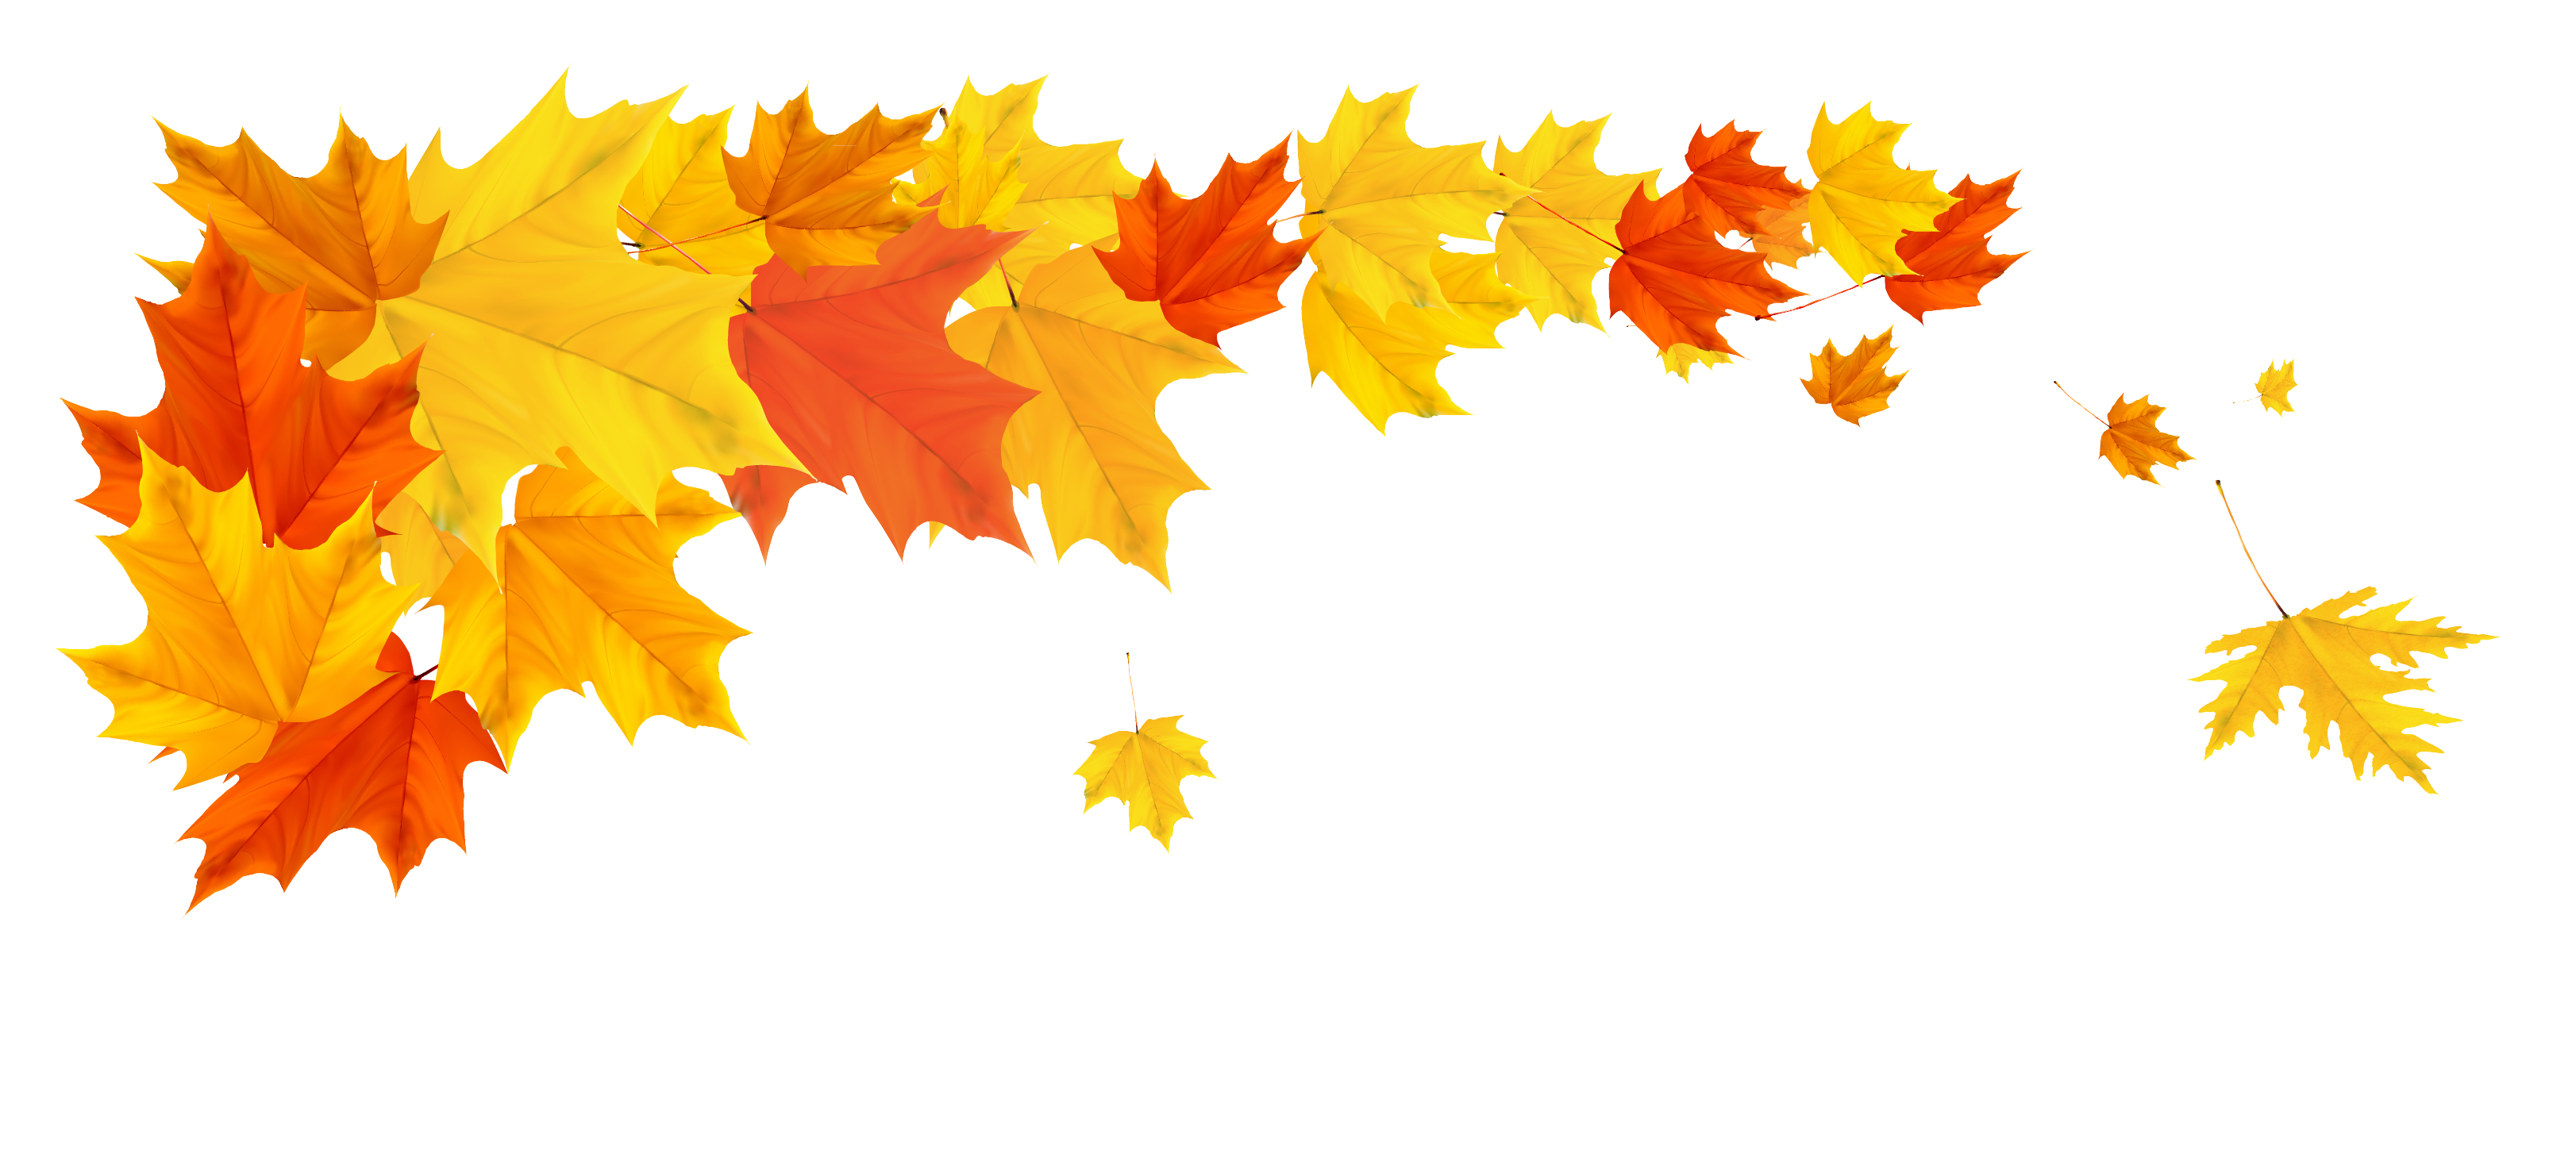 Outdoors clipart cute fall leaves. Orange leafs png picture